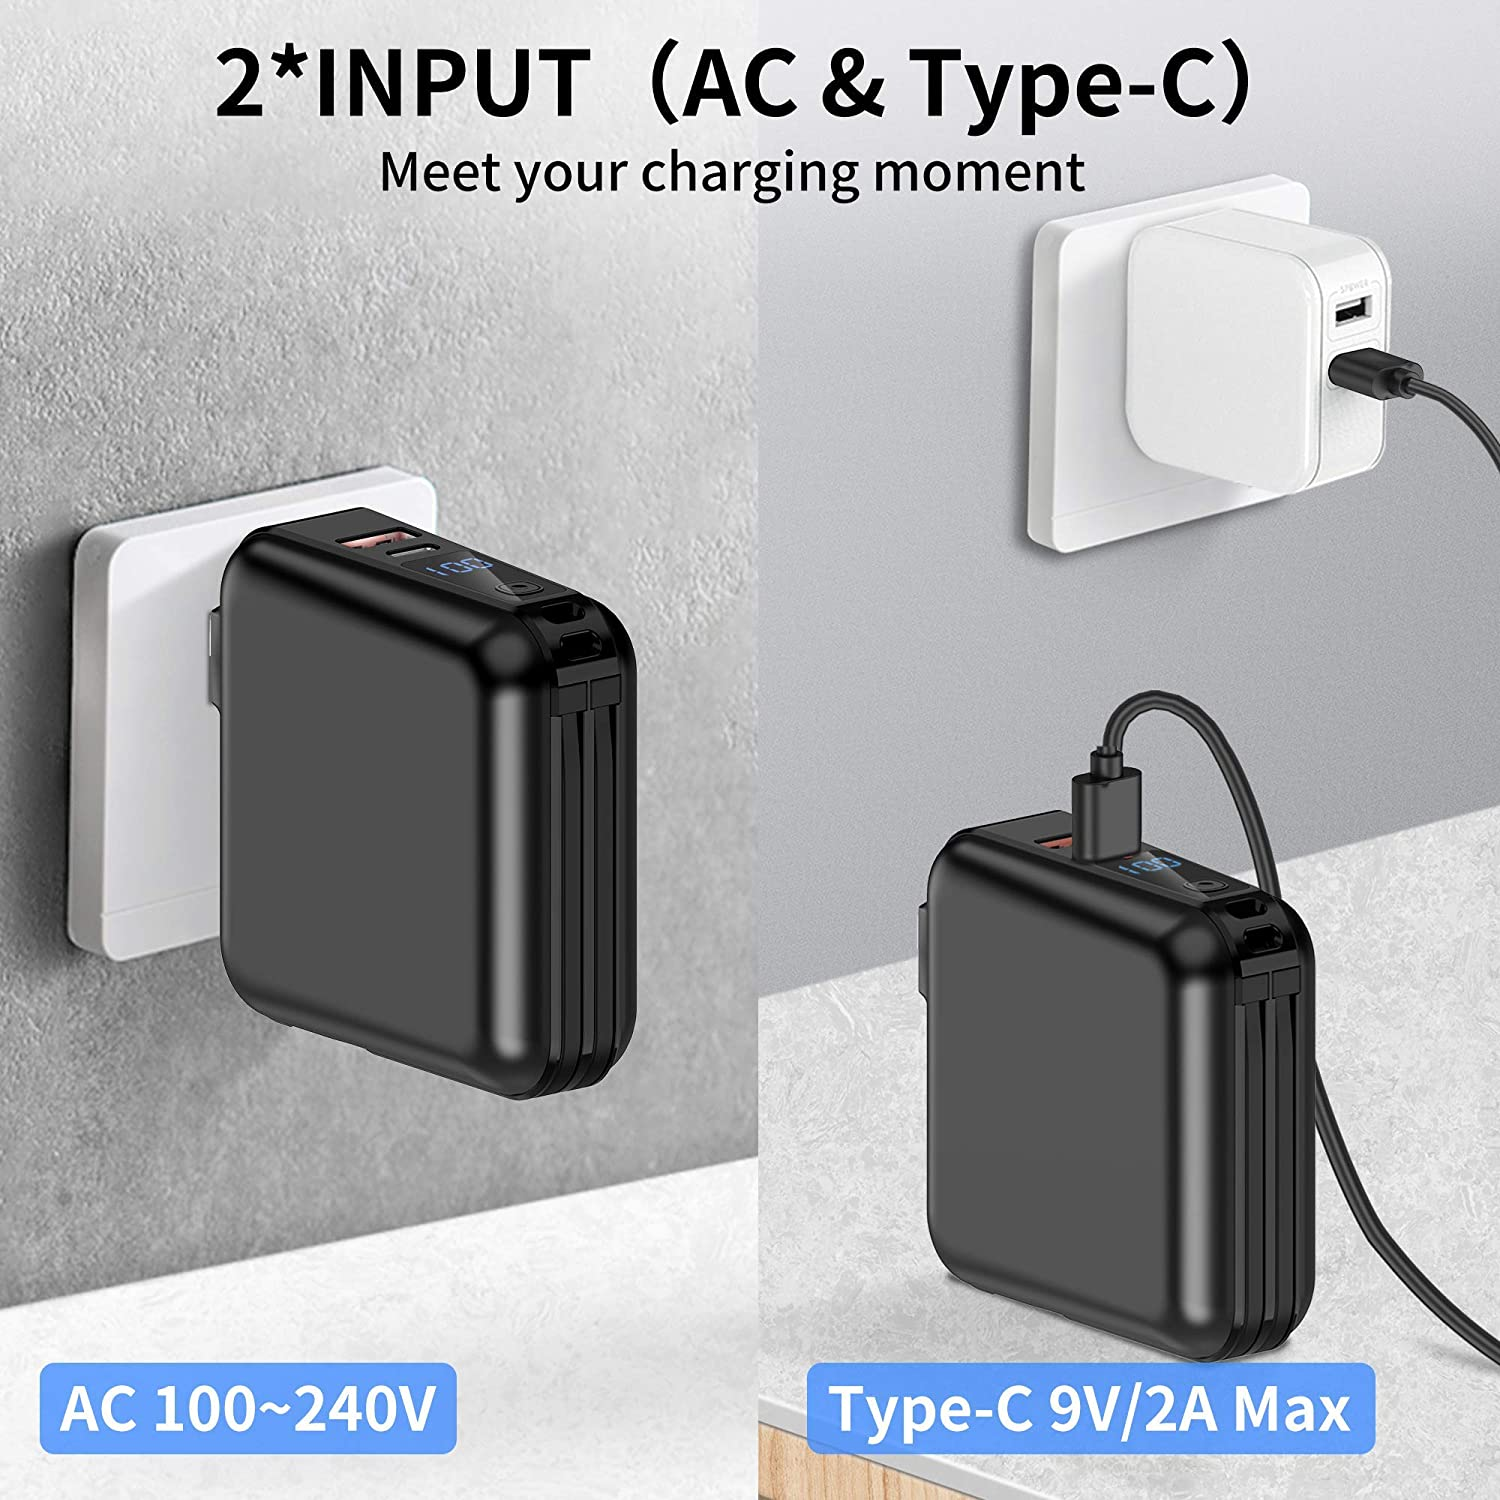 External Battery Pack Phone Charger Built-in Type-C 2 Cables Compatible for iPhone etc Portable Charger with AC Plug 15000mAh Portable Phone Charger 18W PD QC3.0 USB C Power Bank 4 Output 2 Input